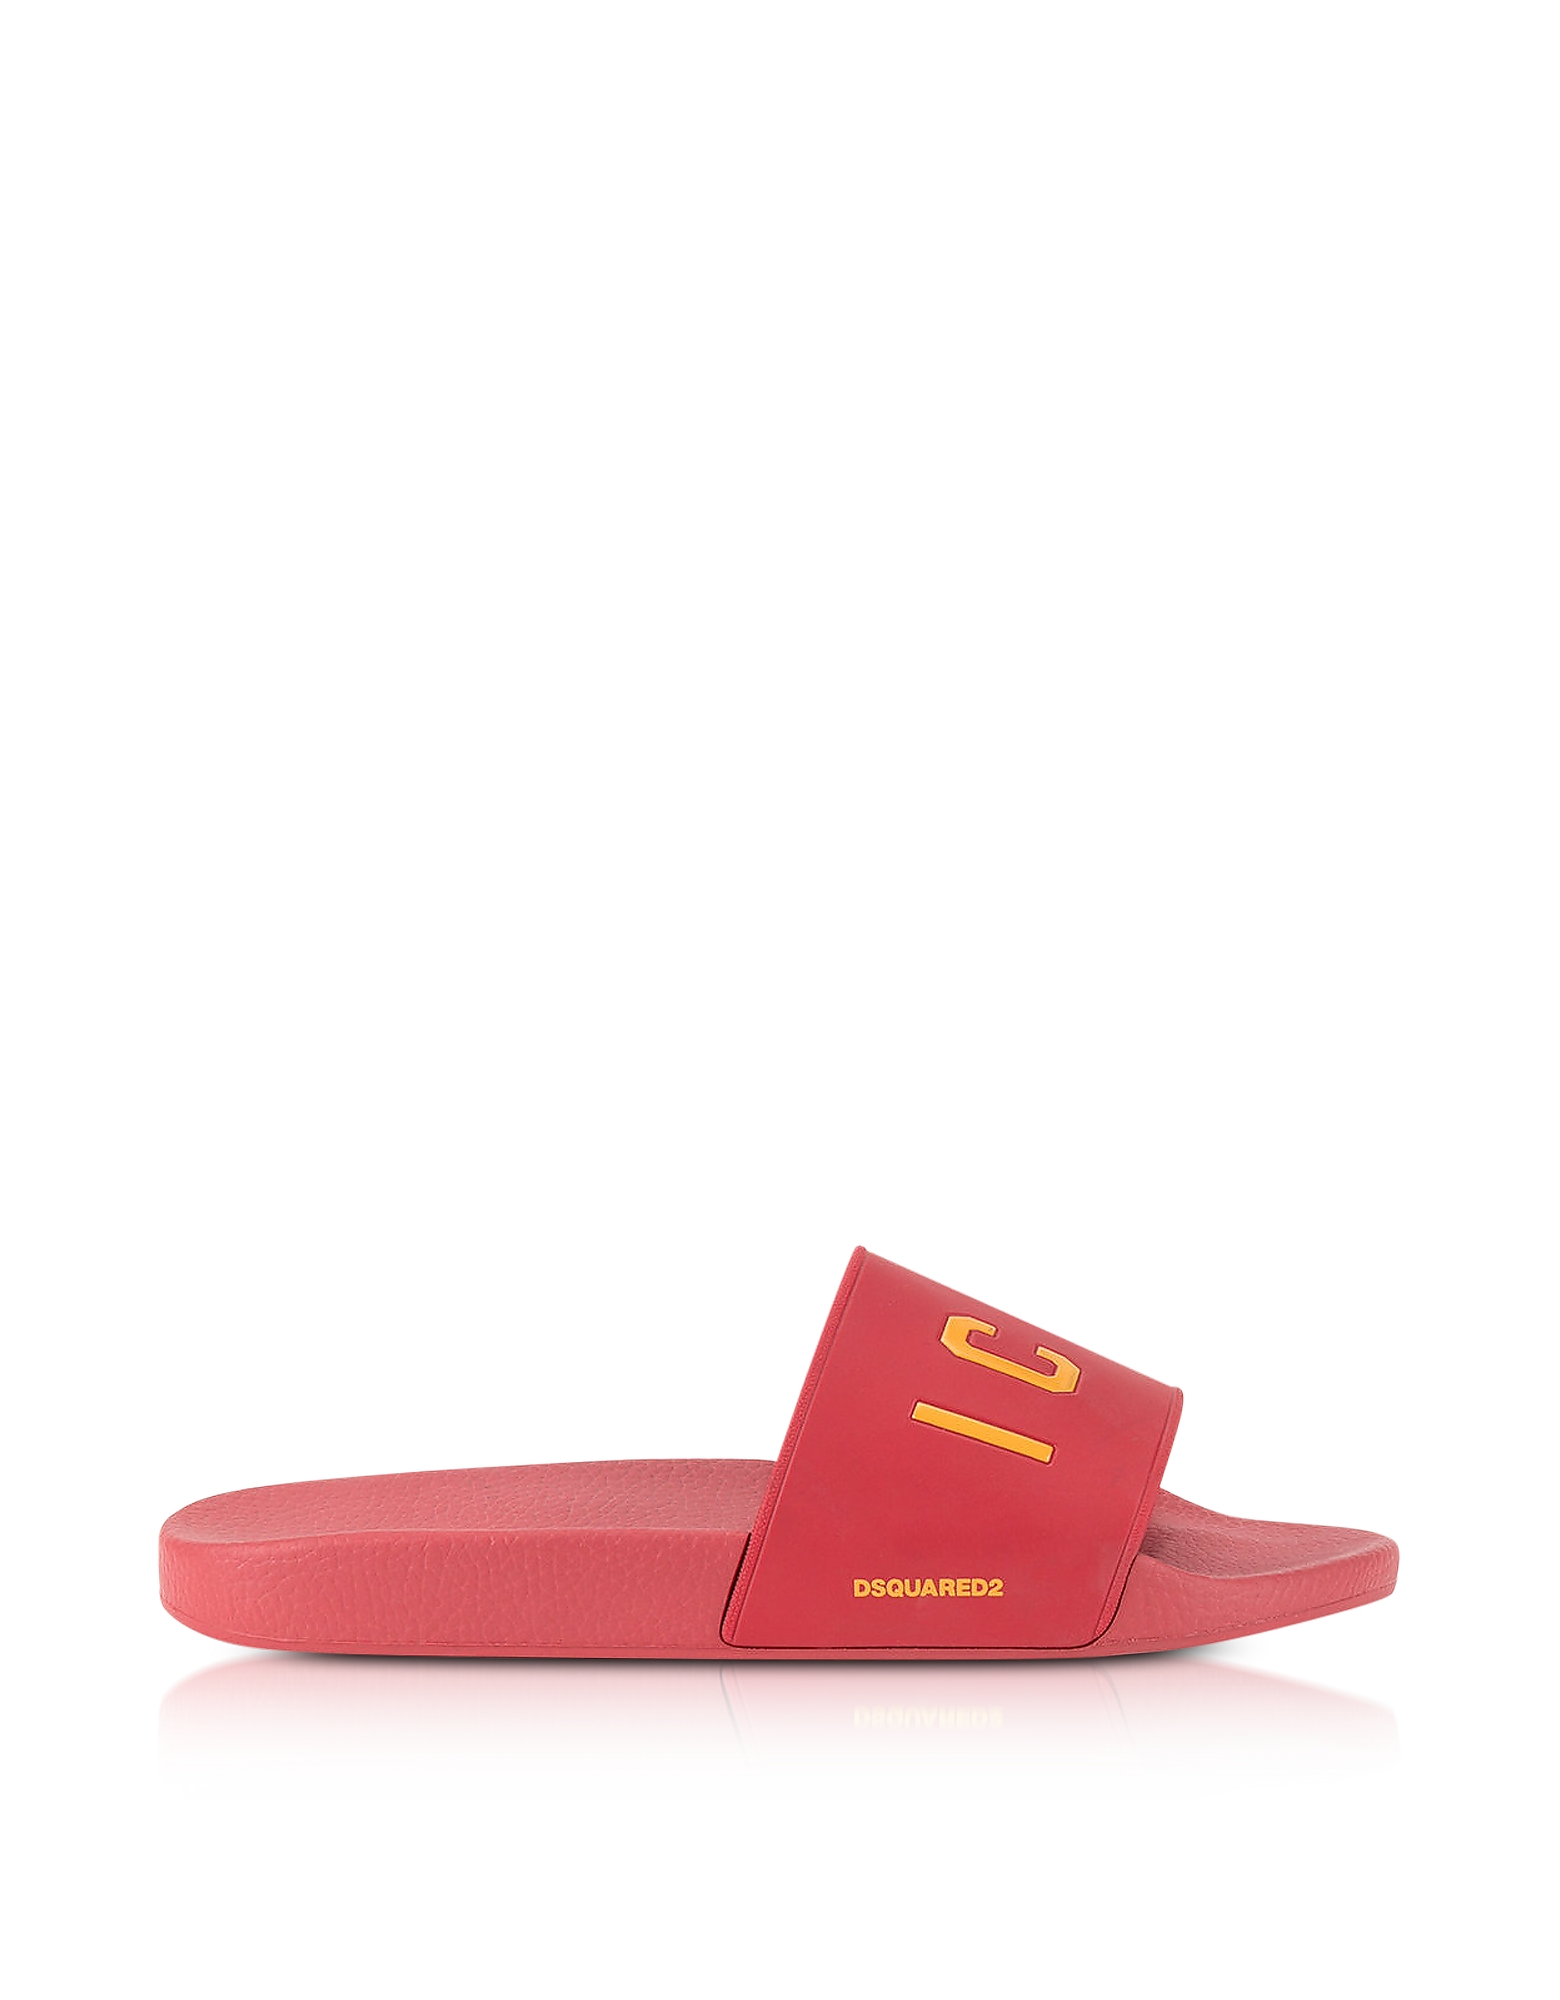 DSquared2 Shoes, Icon Red Rubber Slide Sandals